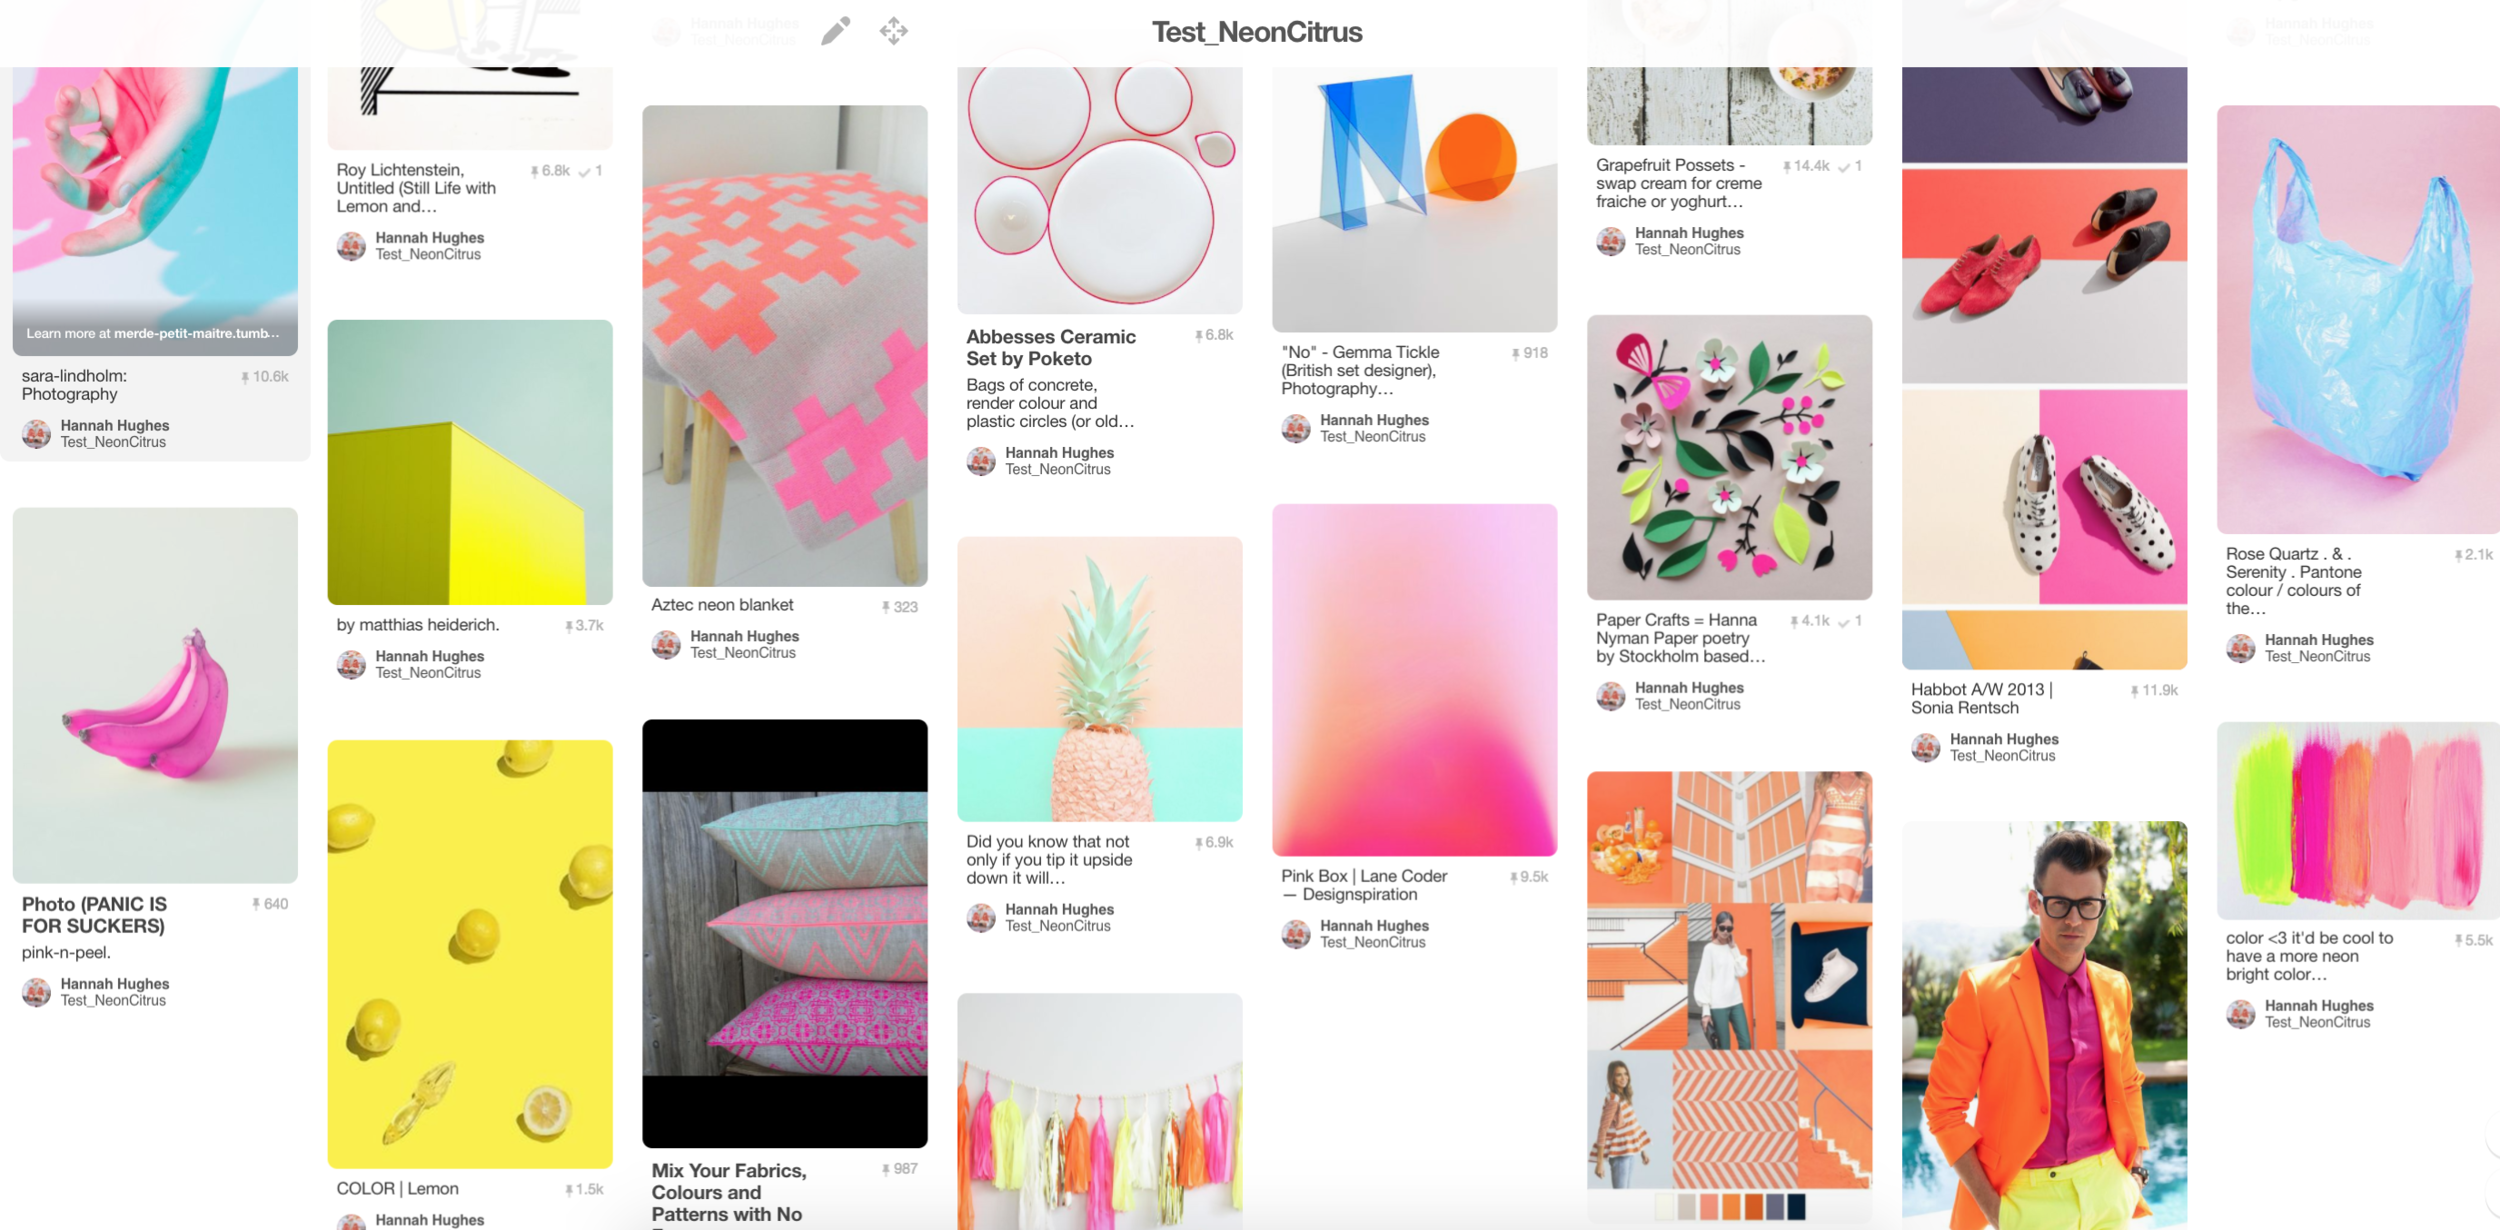 A Screenshot of my Pinterest board, which is usually how I start to brainstorm for a test. CLICK ON THE IMAGE TO GO TO THE BOARD ITSELF.